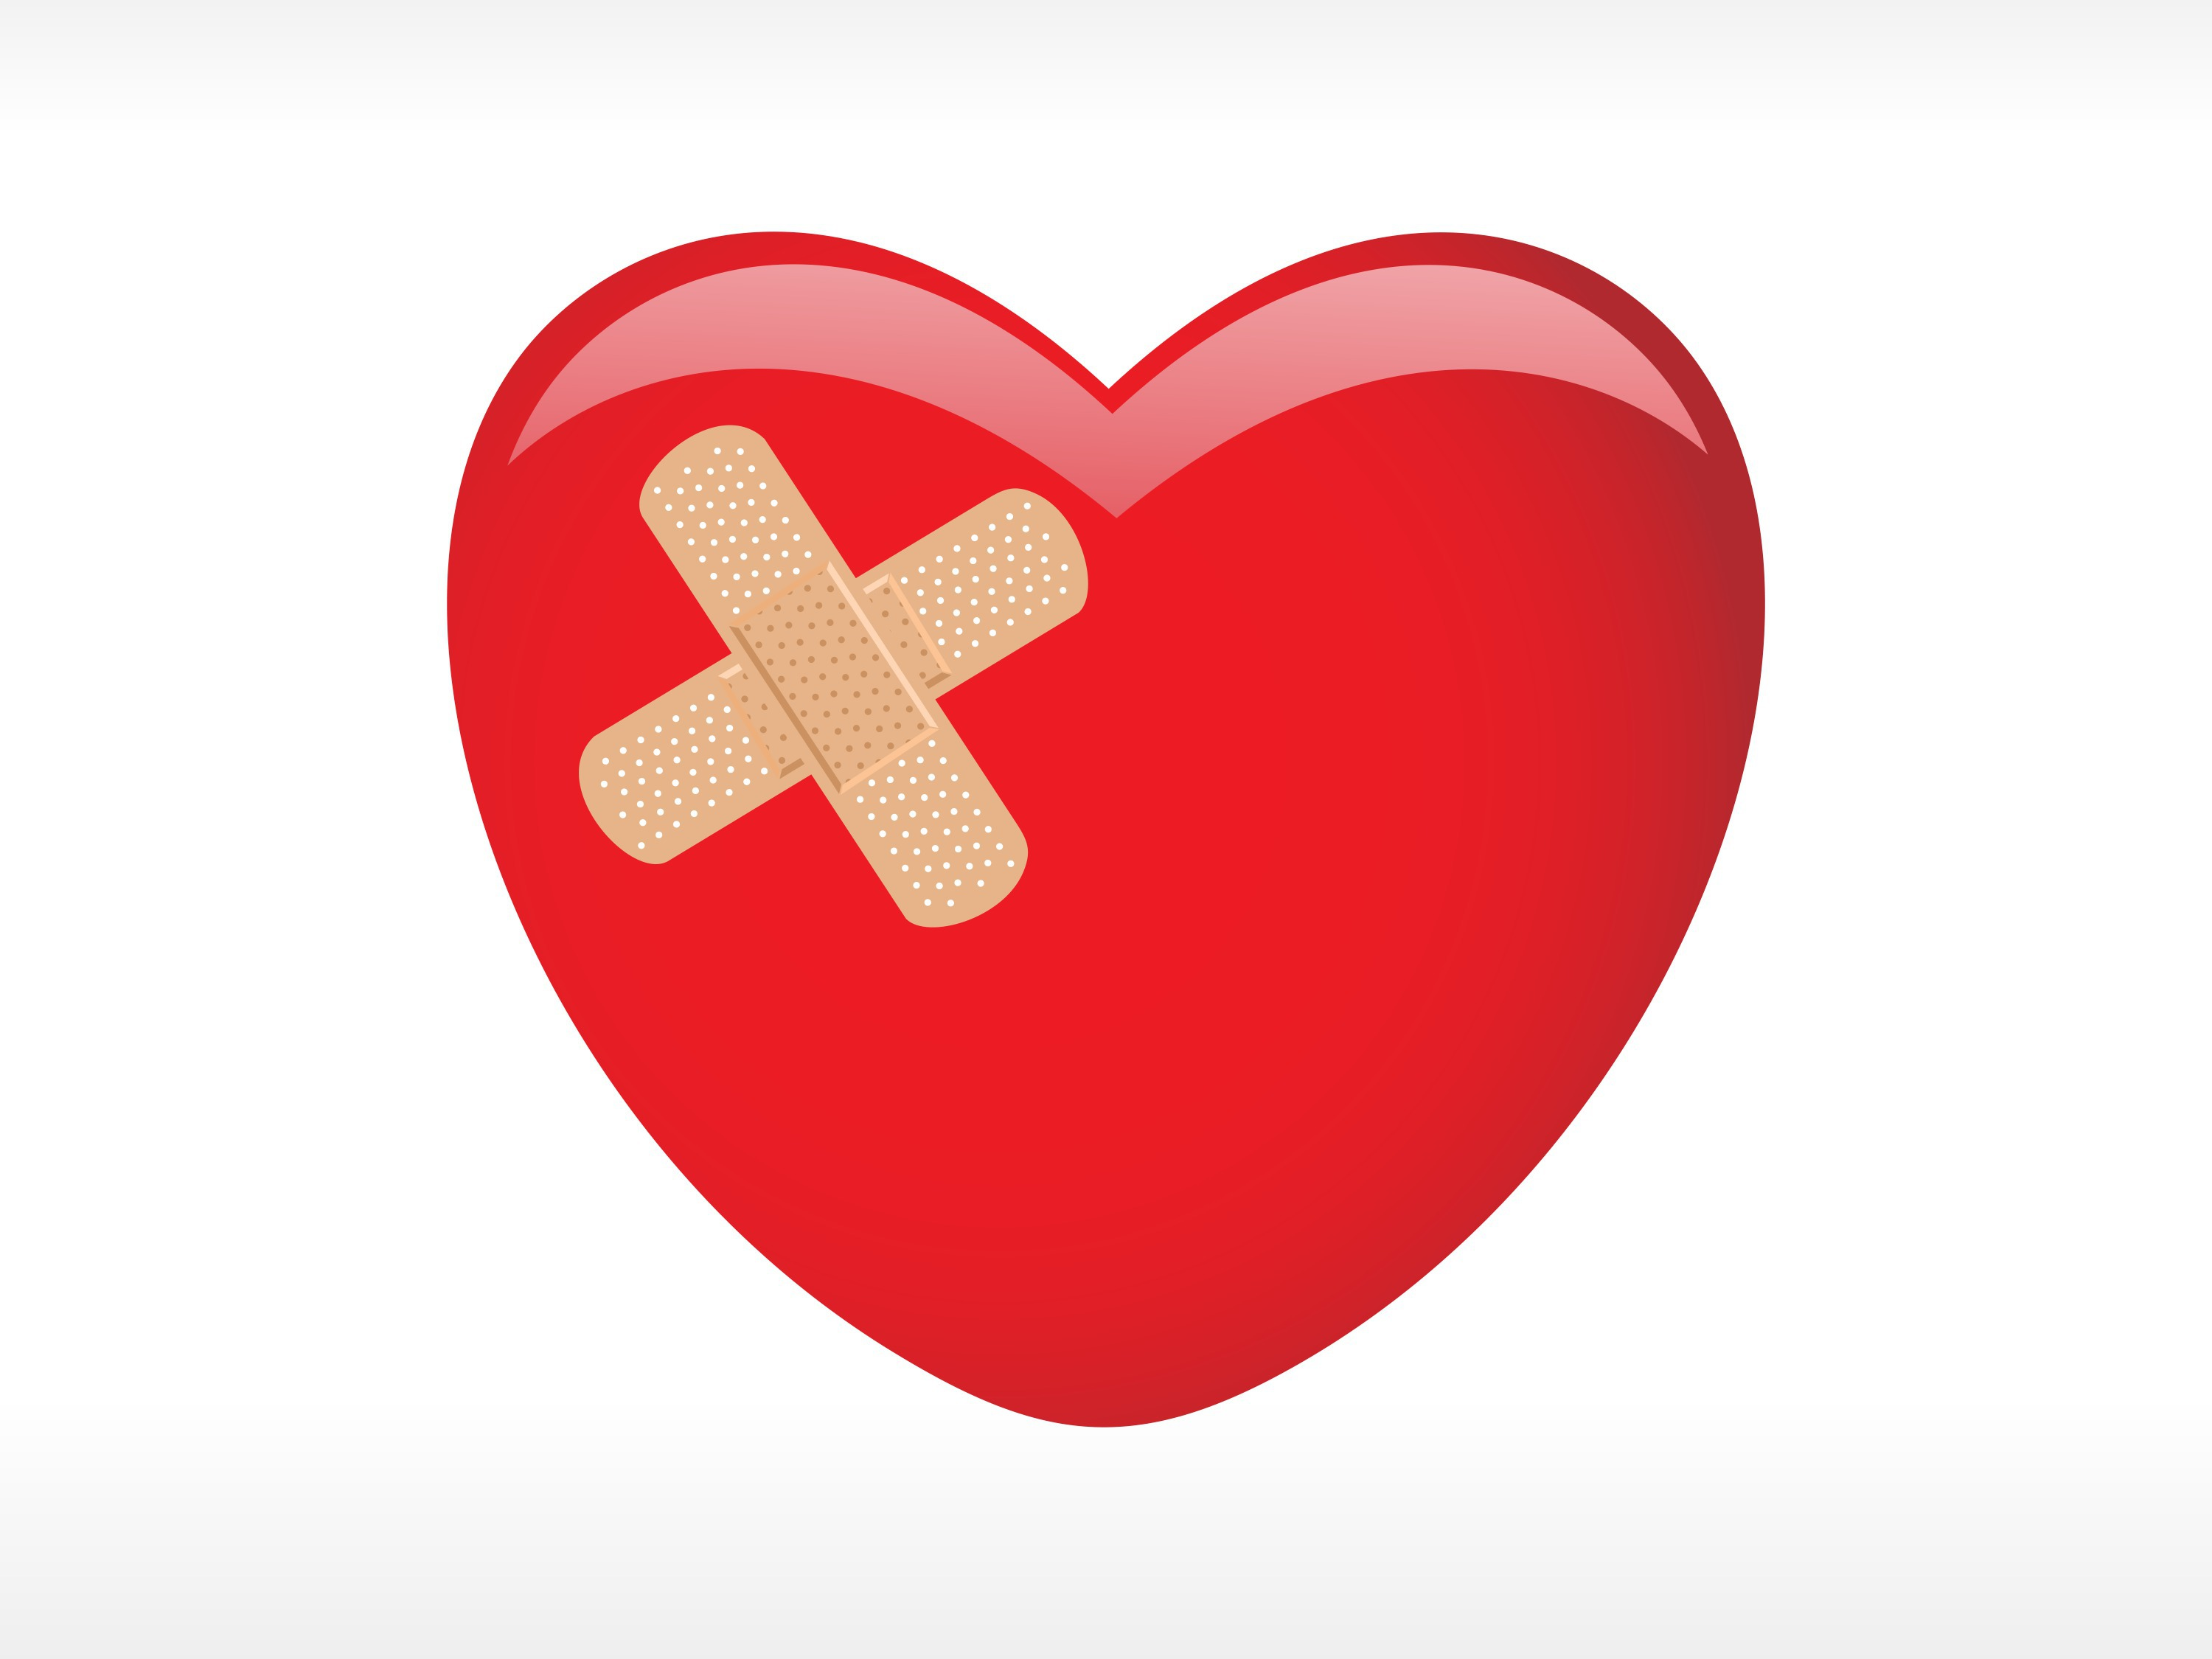 resized_heart-with-a-plaster_fkfzgwyo_l